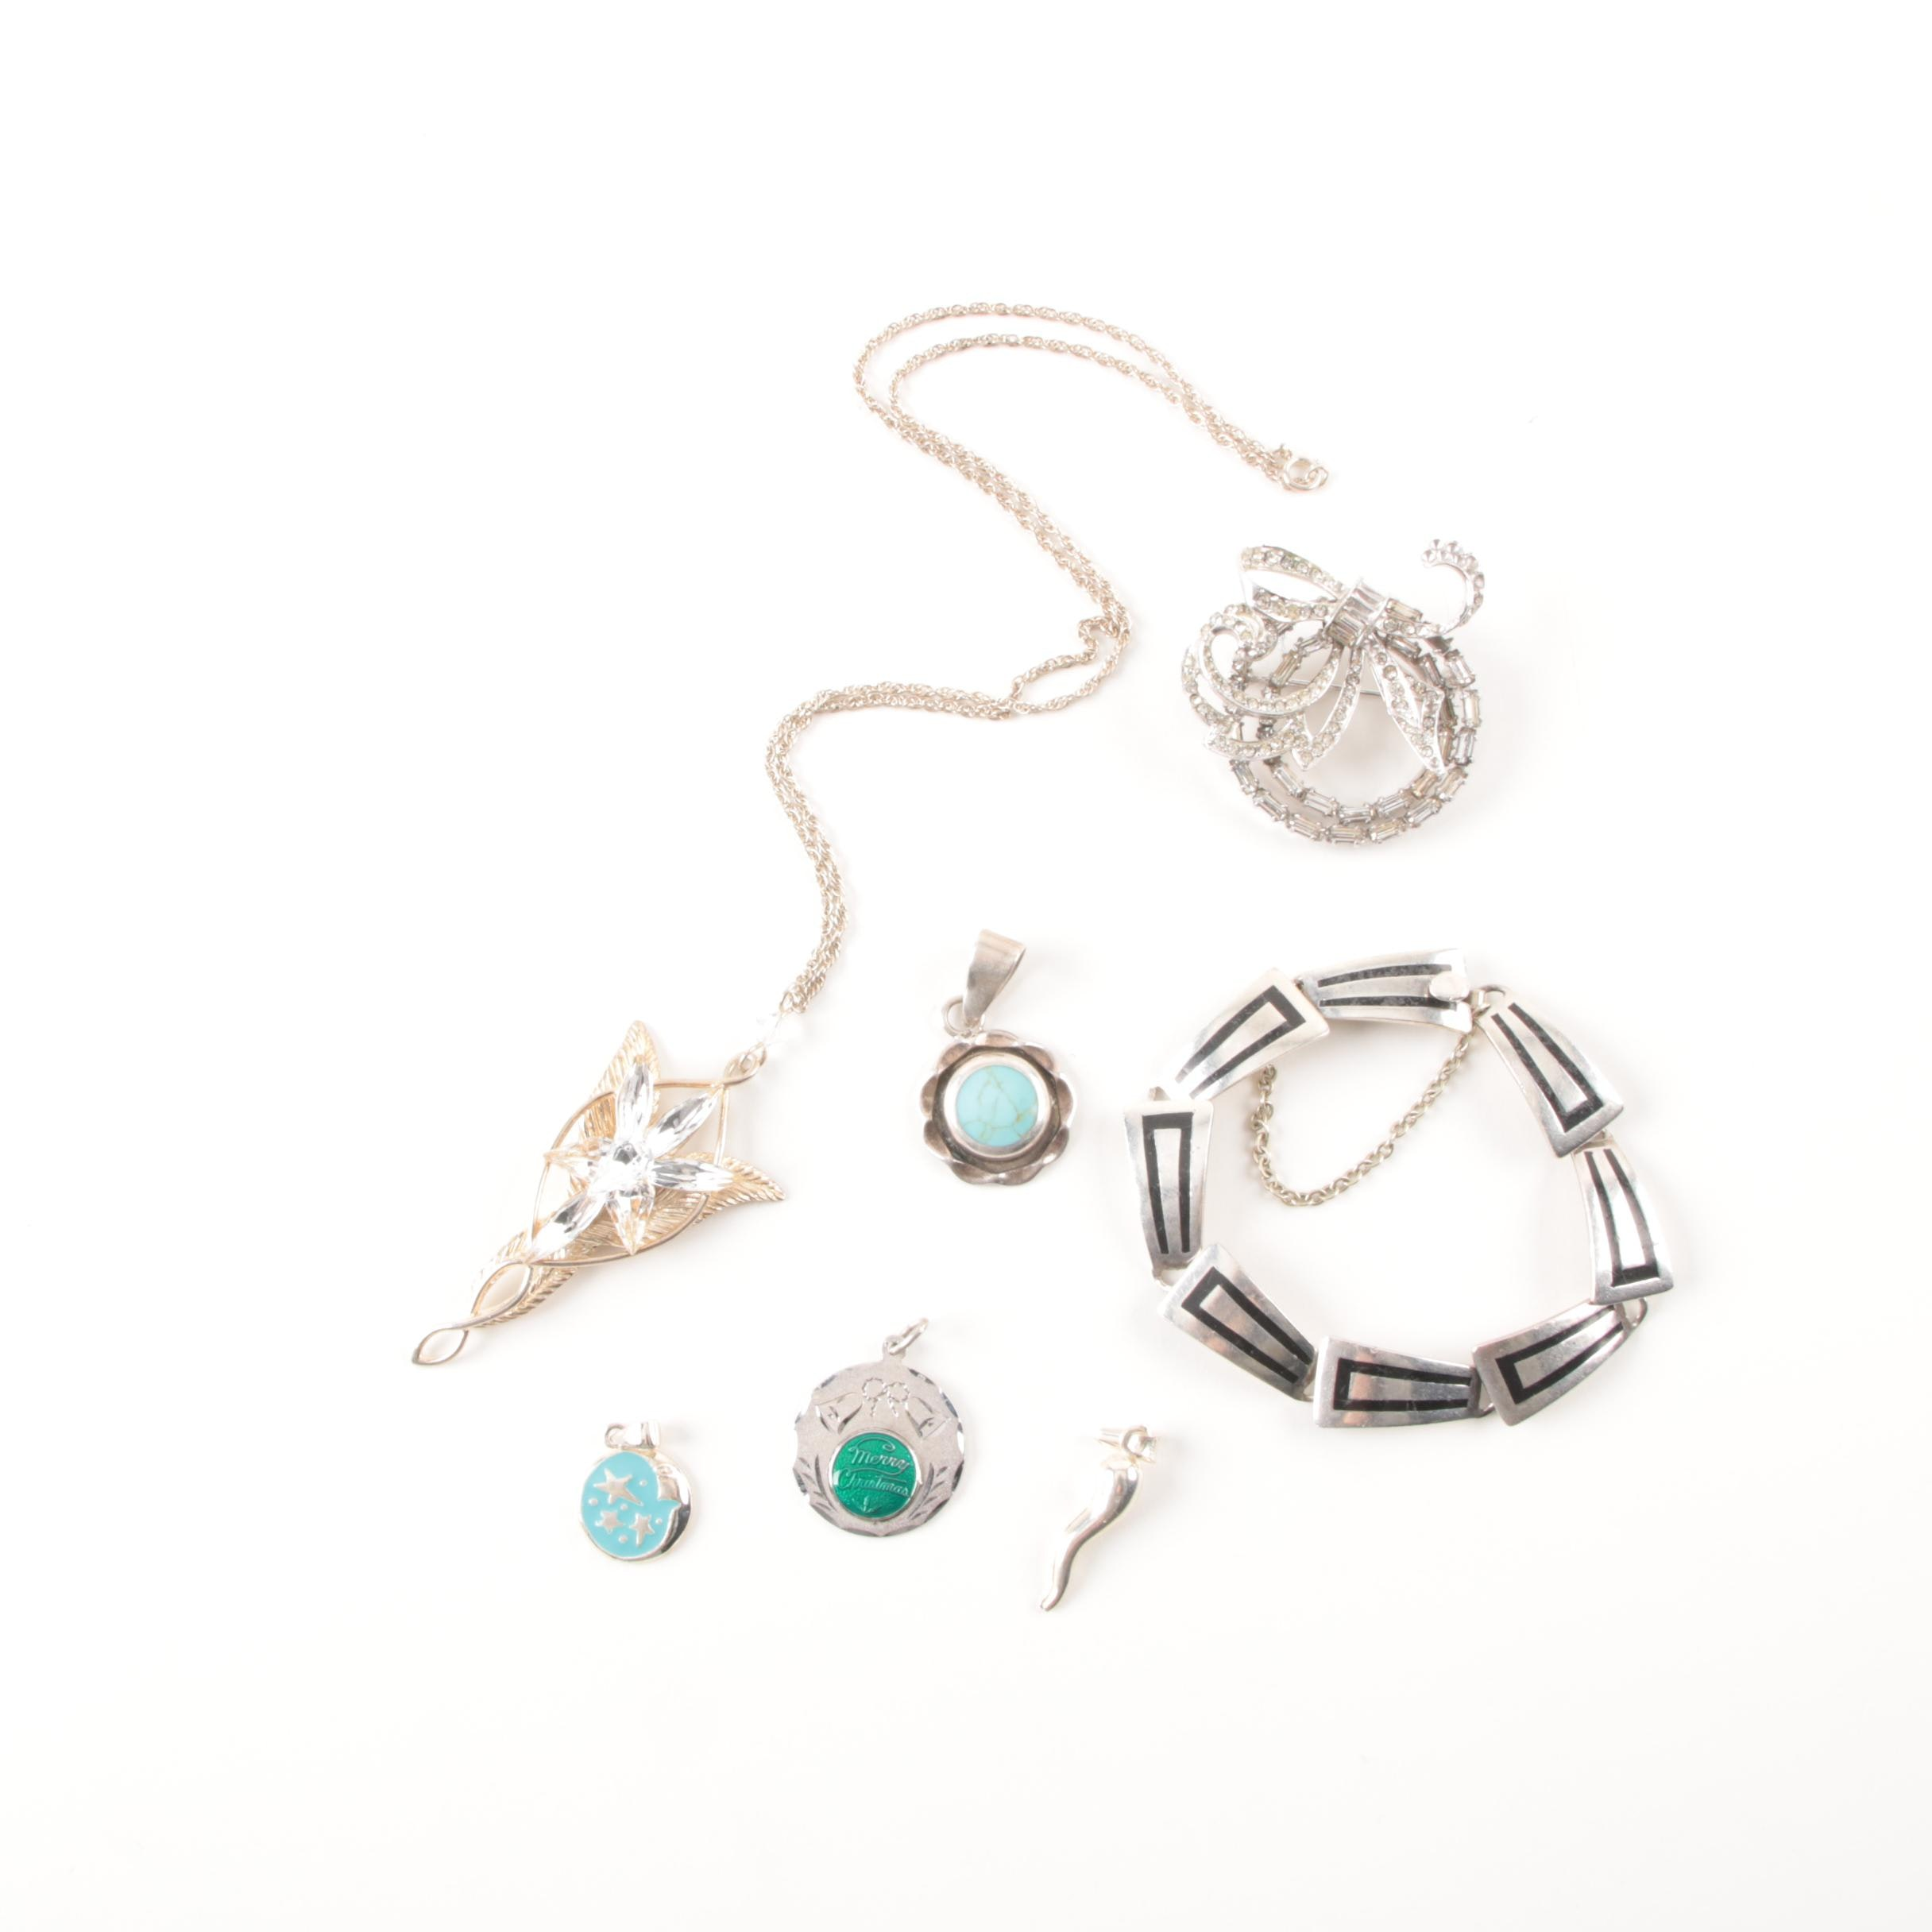 Collection of Sterling Silver Jewelry Featuring Pendants